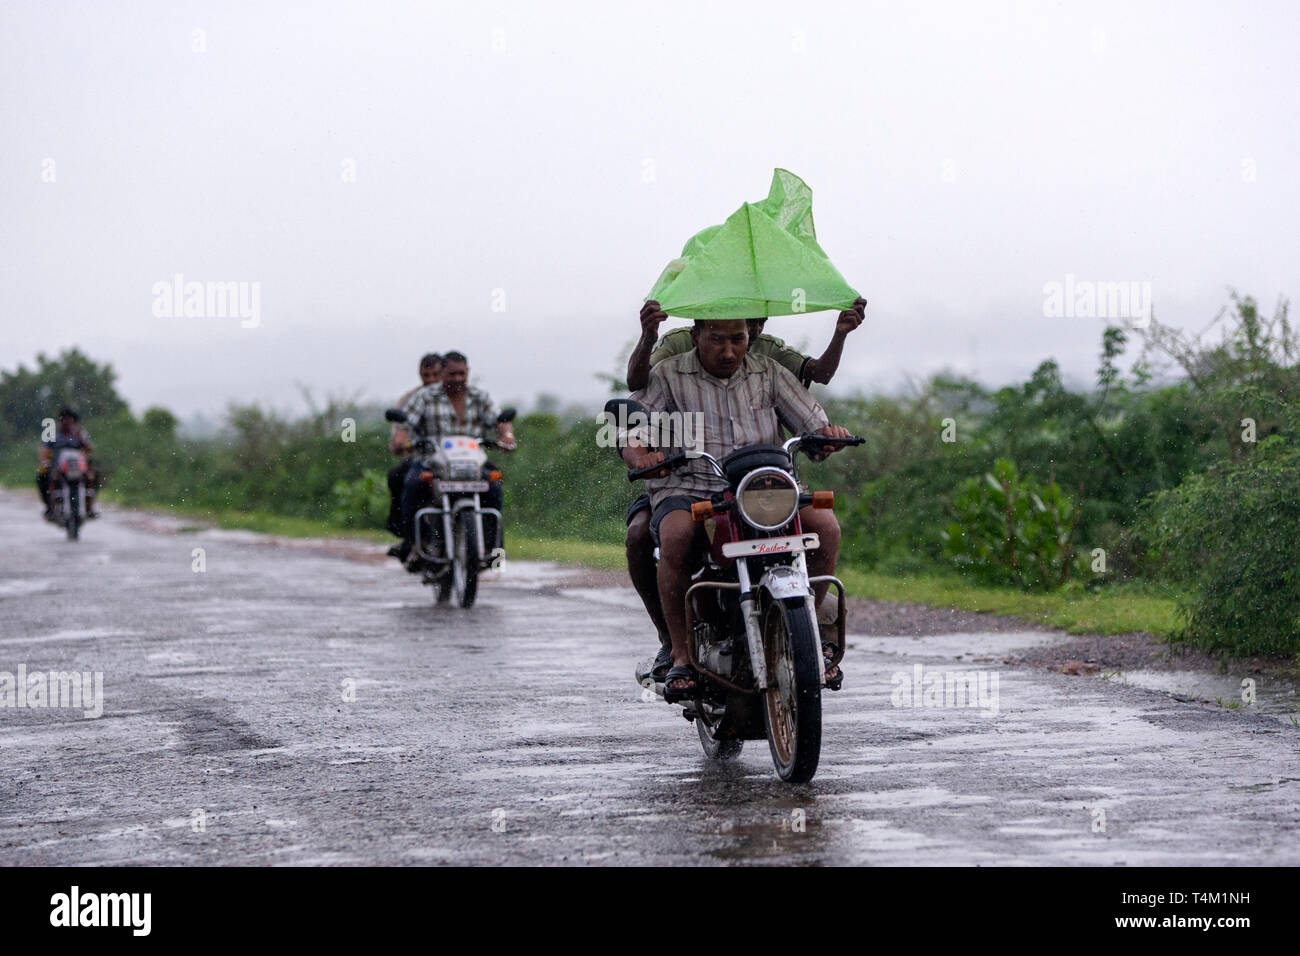 Bikers protecting with plastic bag the heavy rain in Rajasthan, India - Stock Image